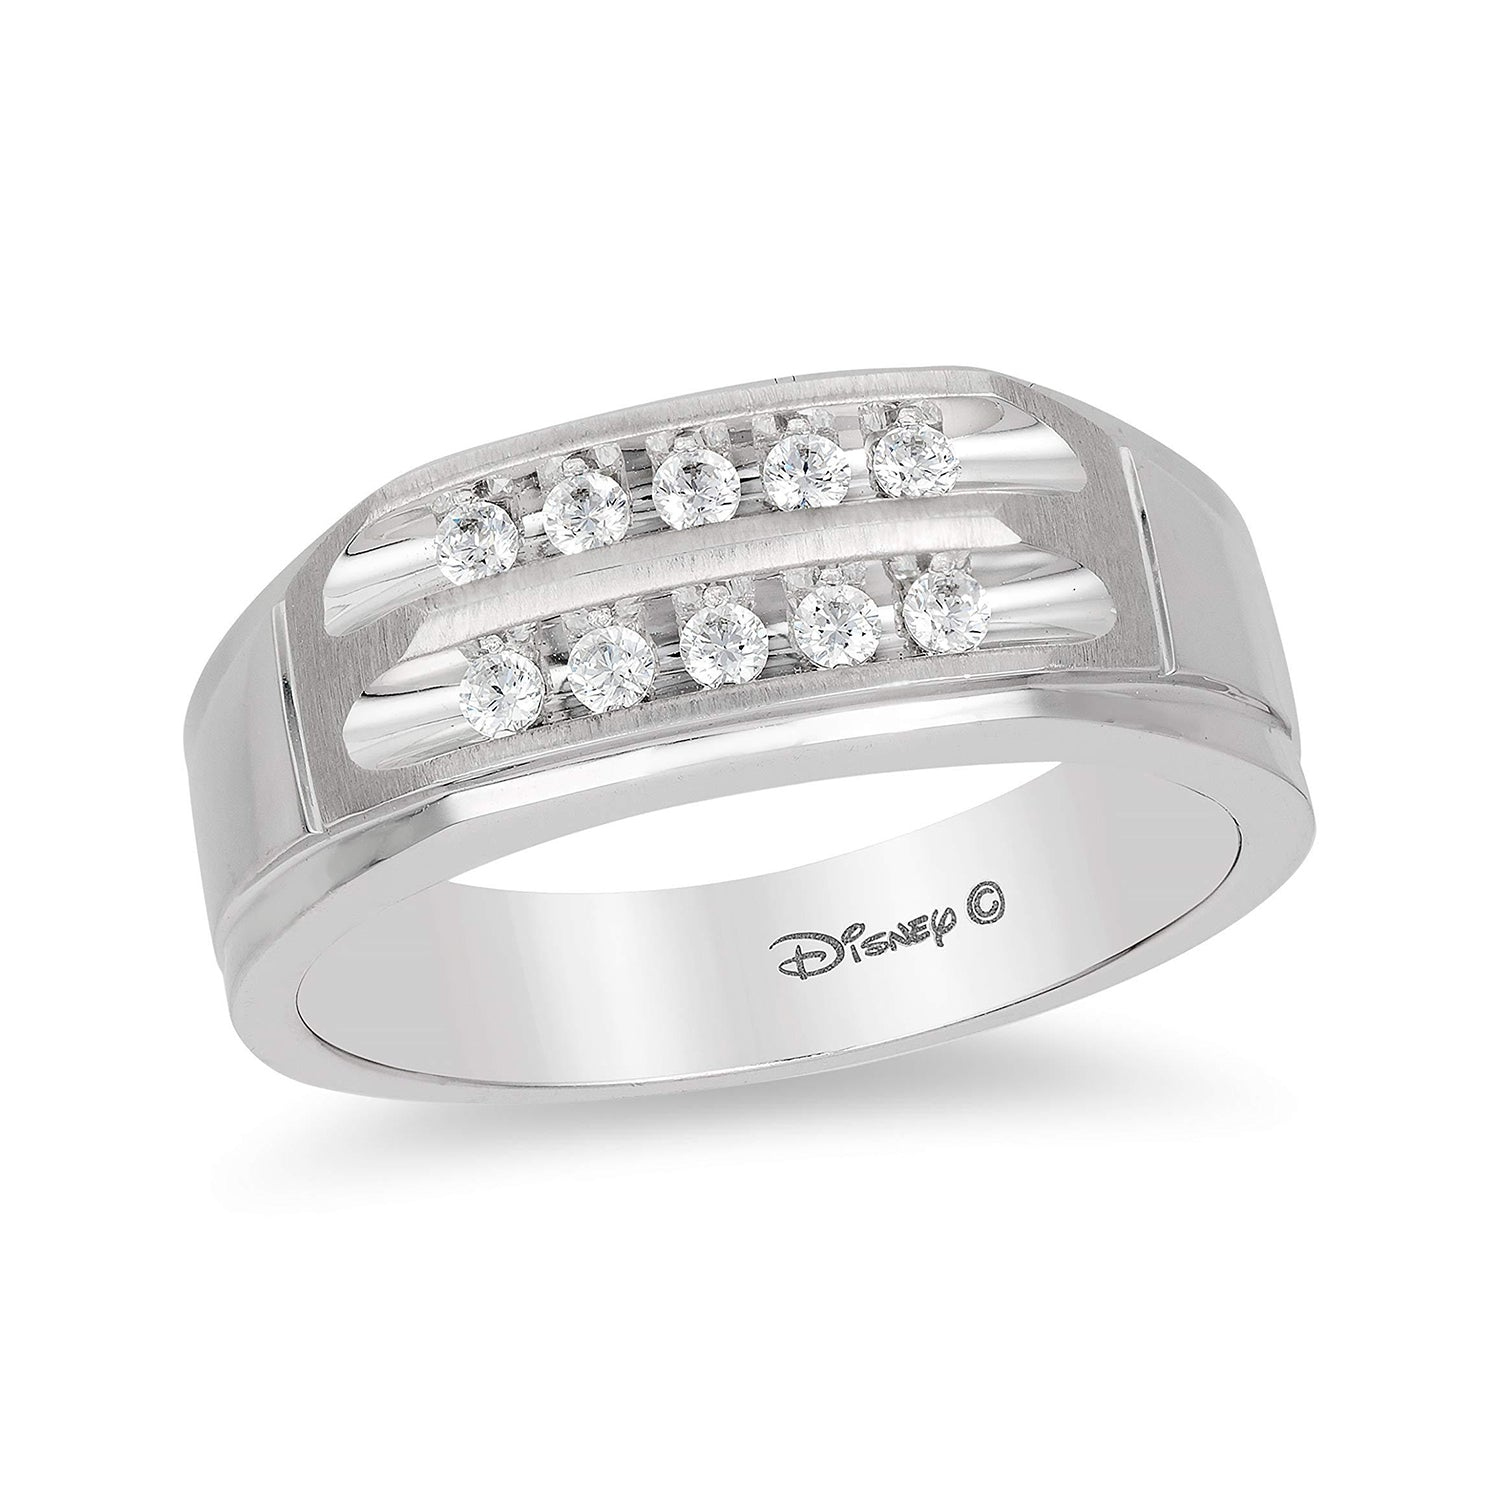 enchanted_disney-prince_fine_jewelry_14k_white_gold_1_4_cttw_mens_ring-14k_white_gold_1/4CTTW_1